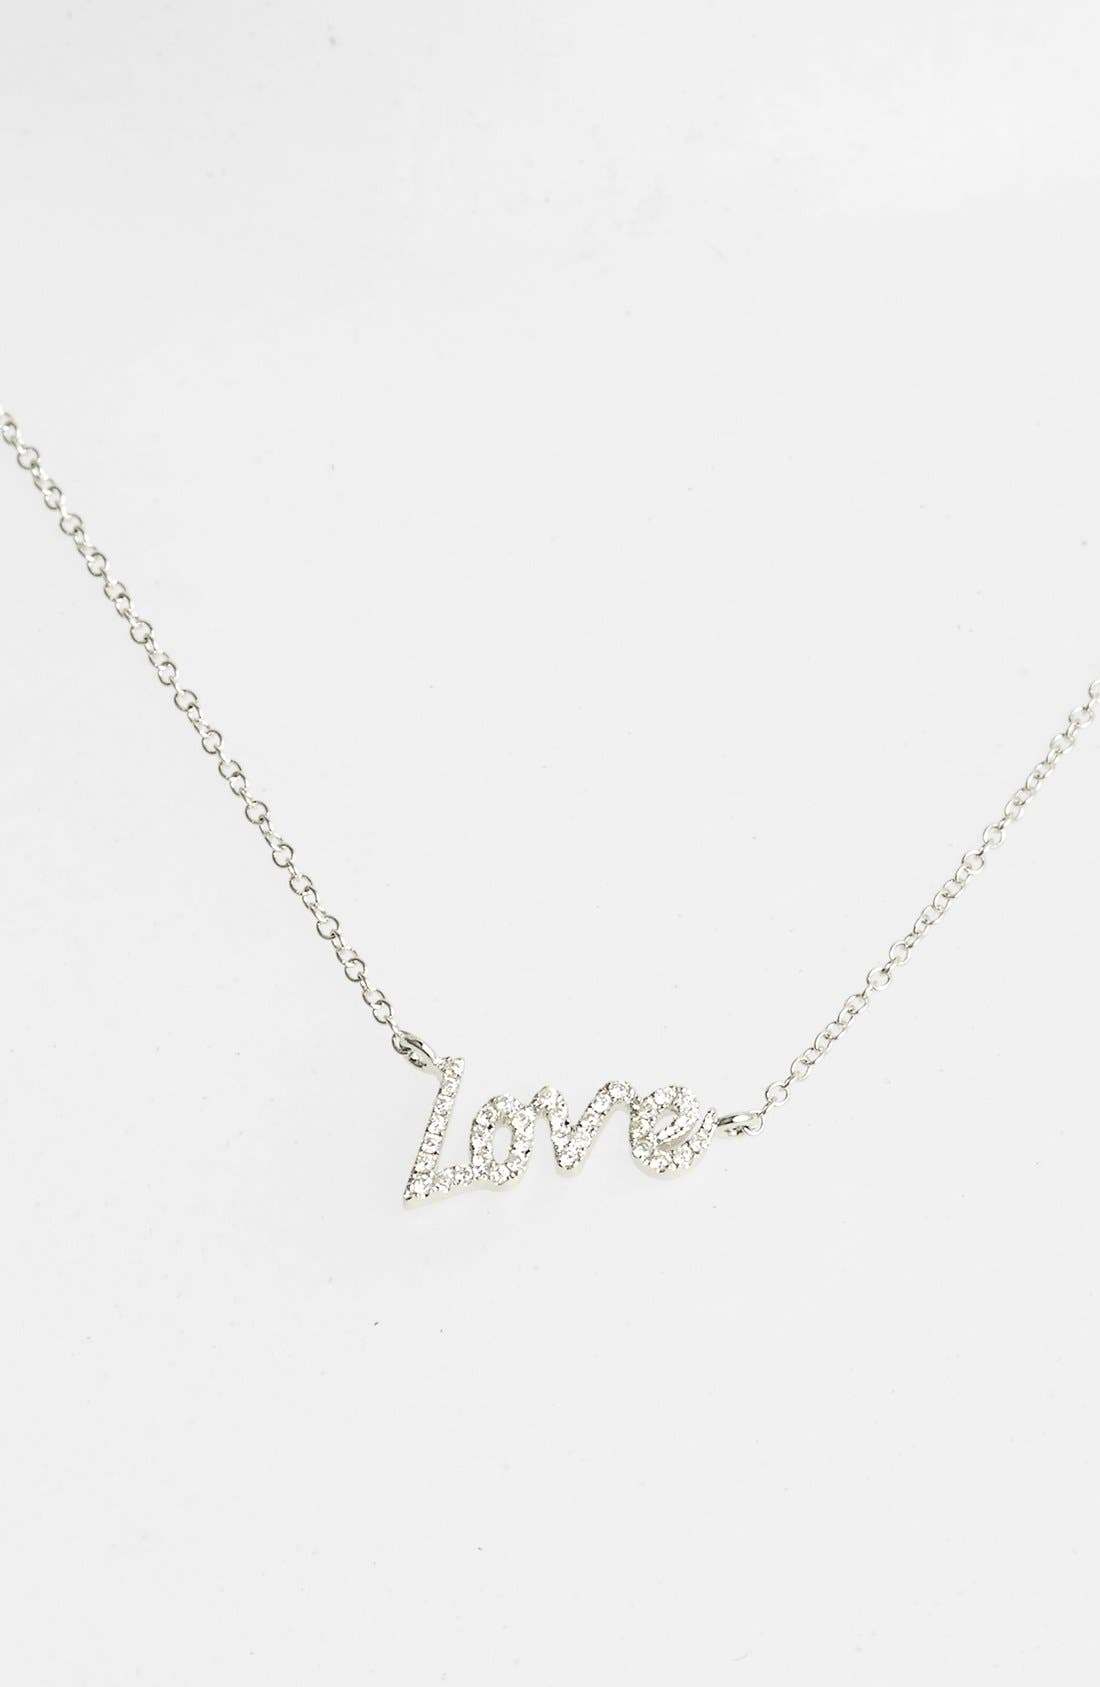 MEIRA T MeiraT Dazzling Diamond Love Pendant Necklace